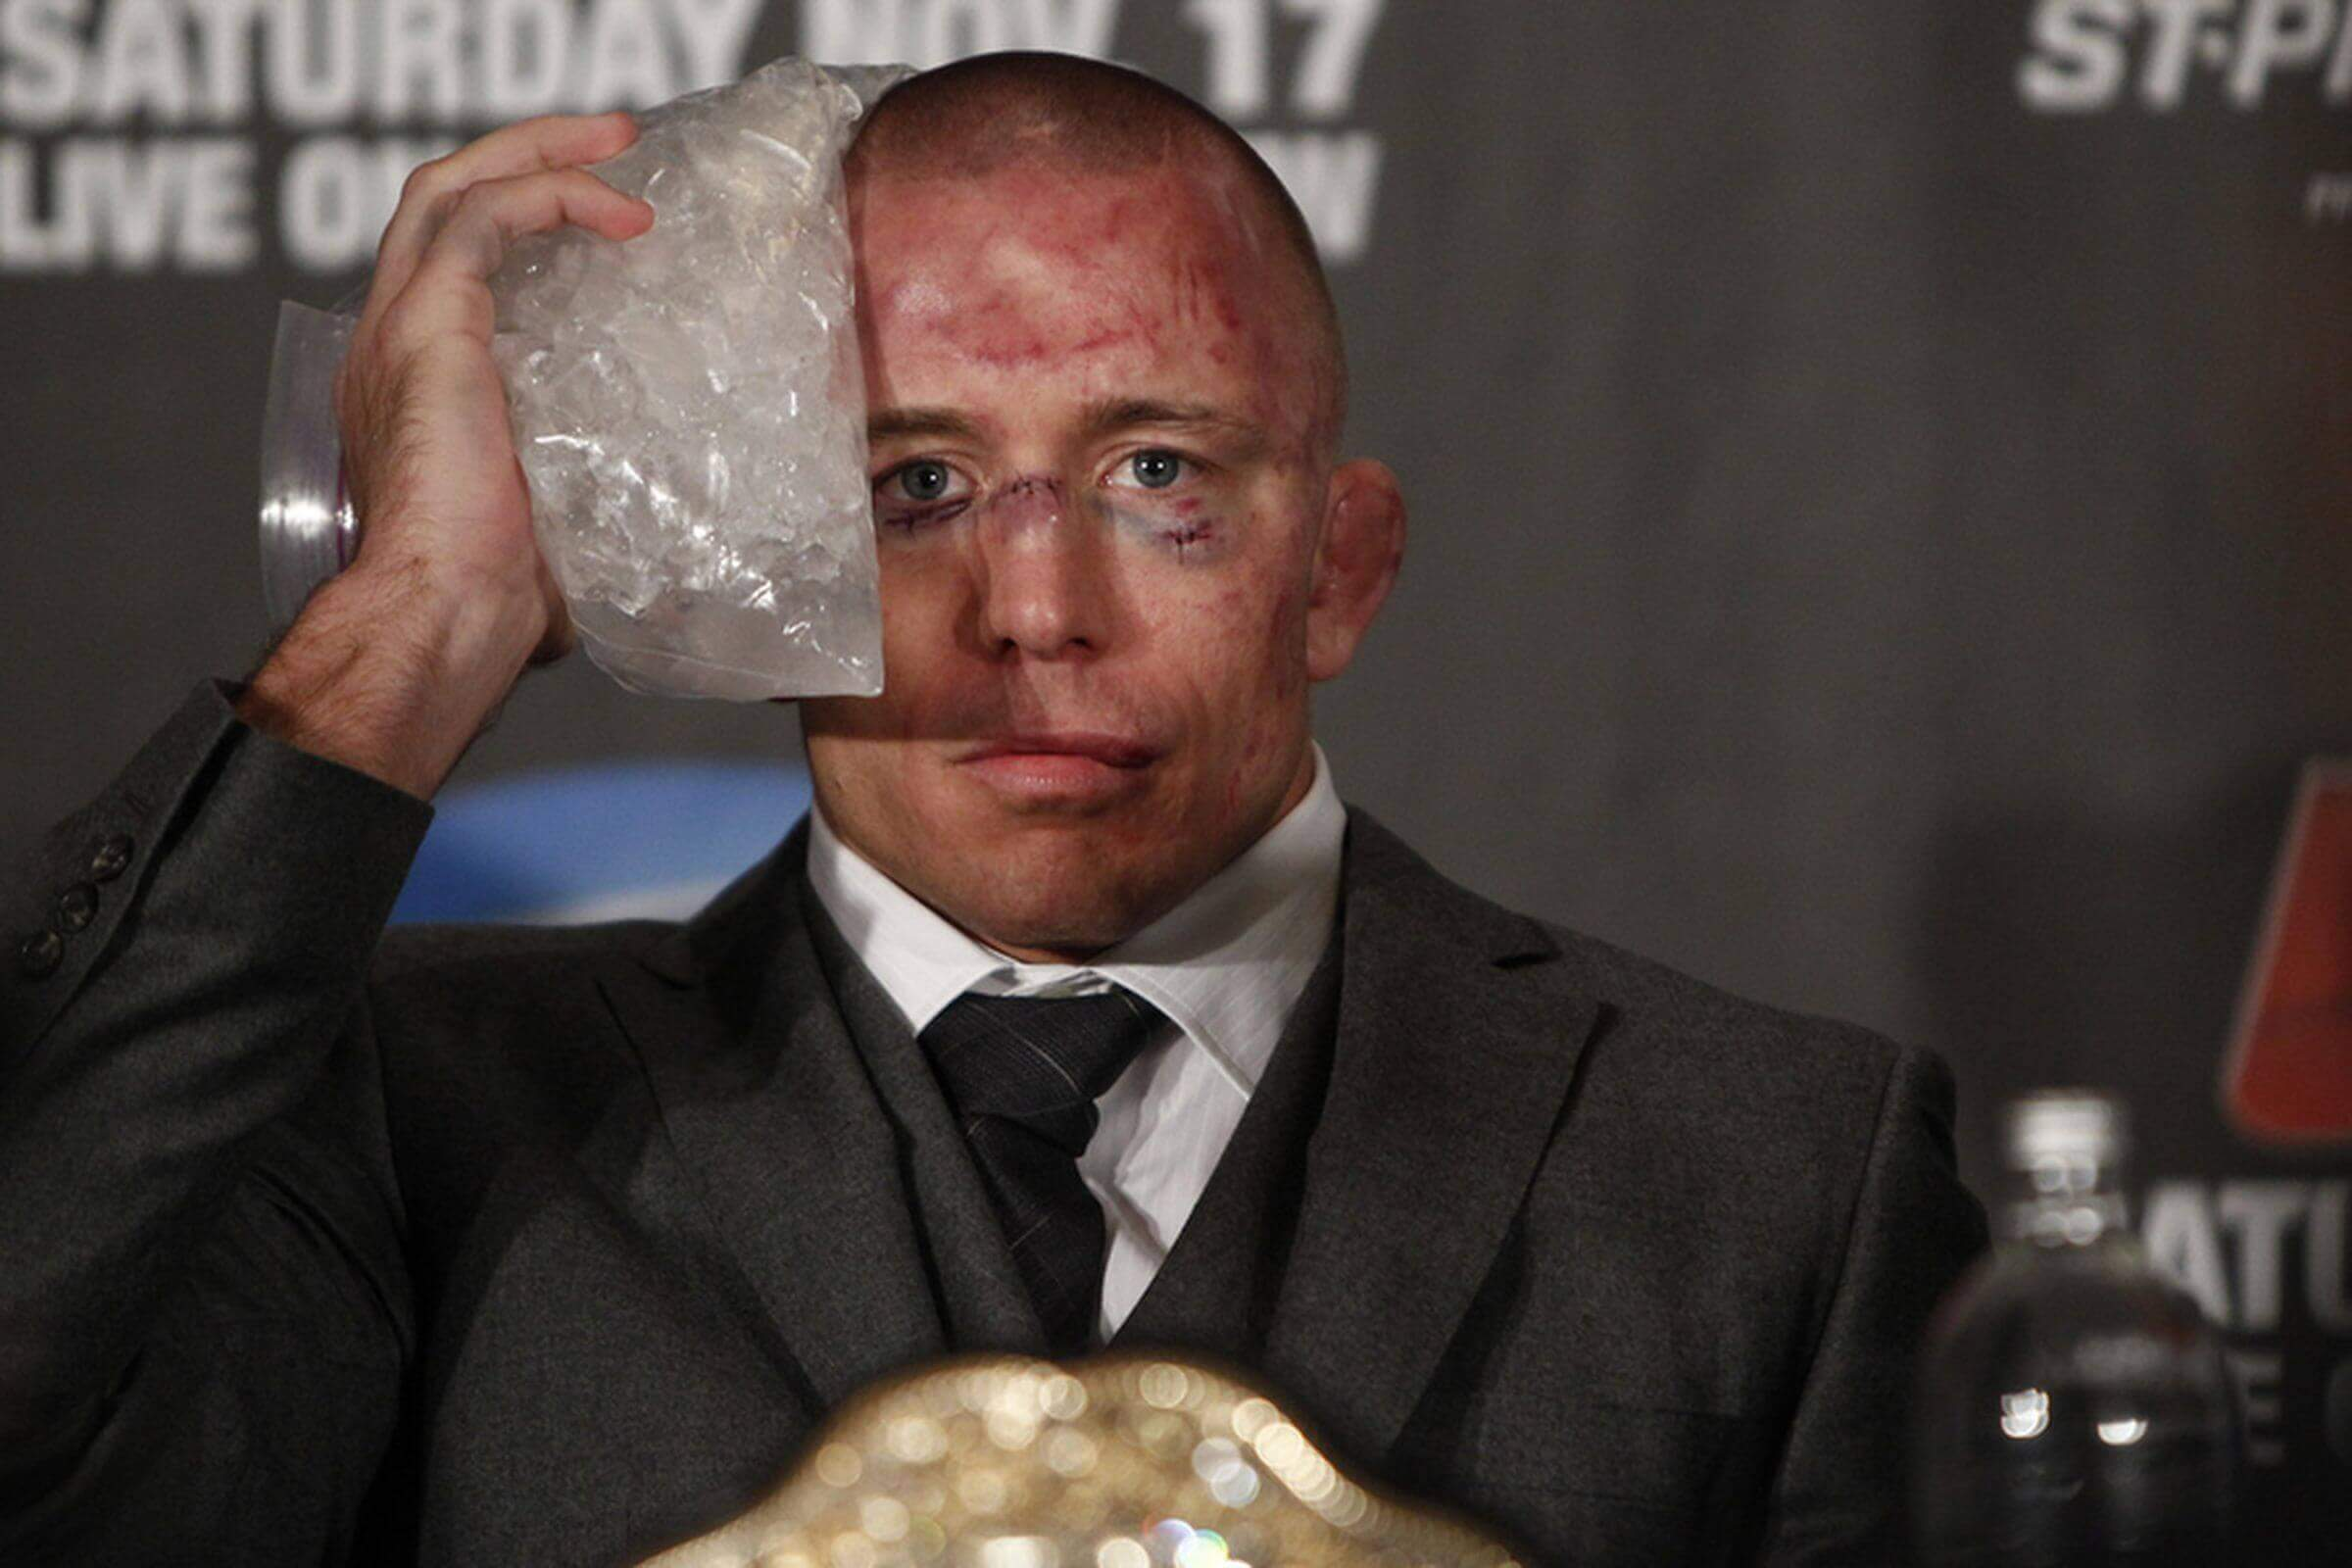 st. pierre ices face after ufc match